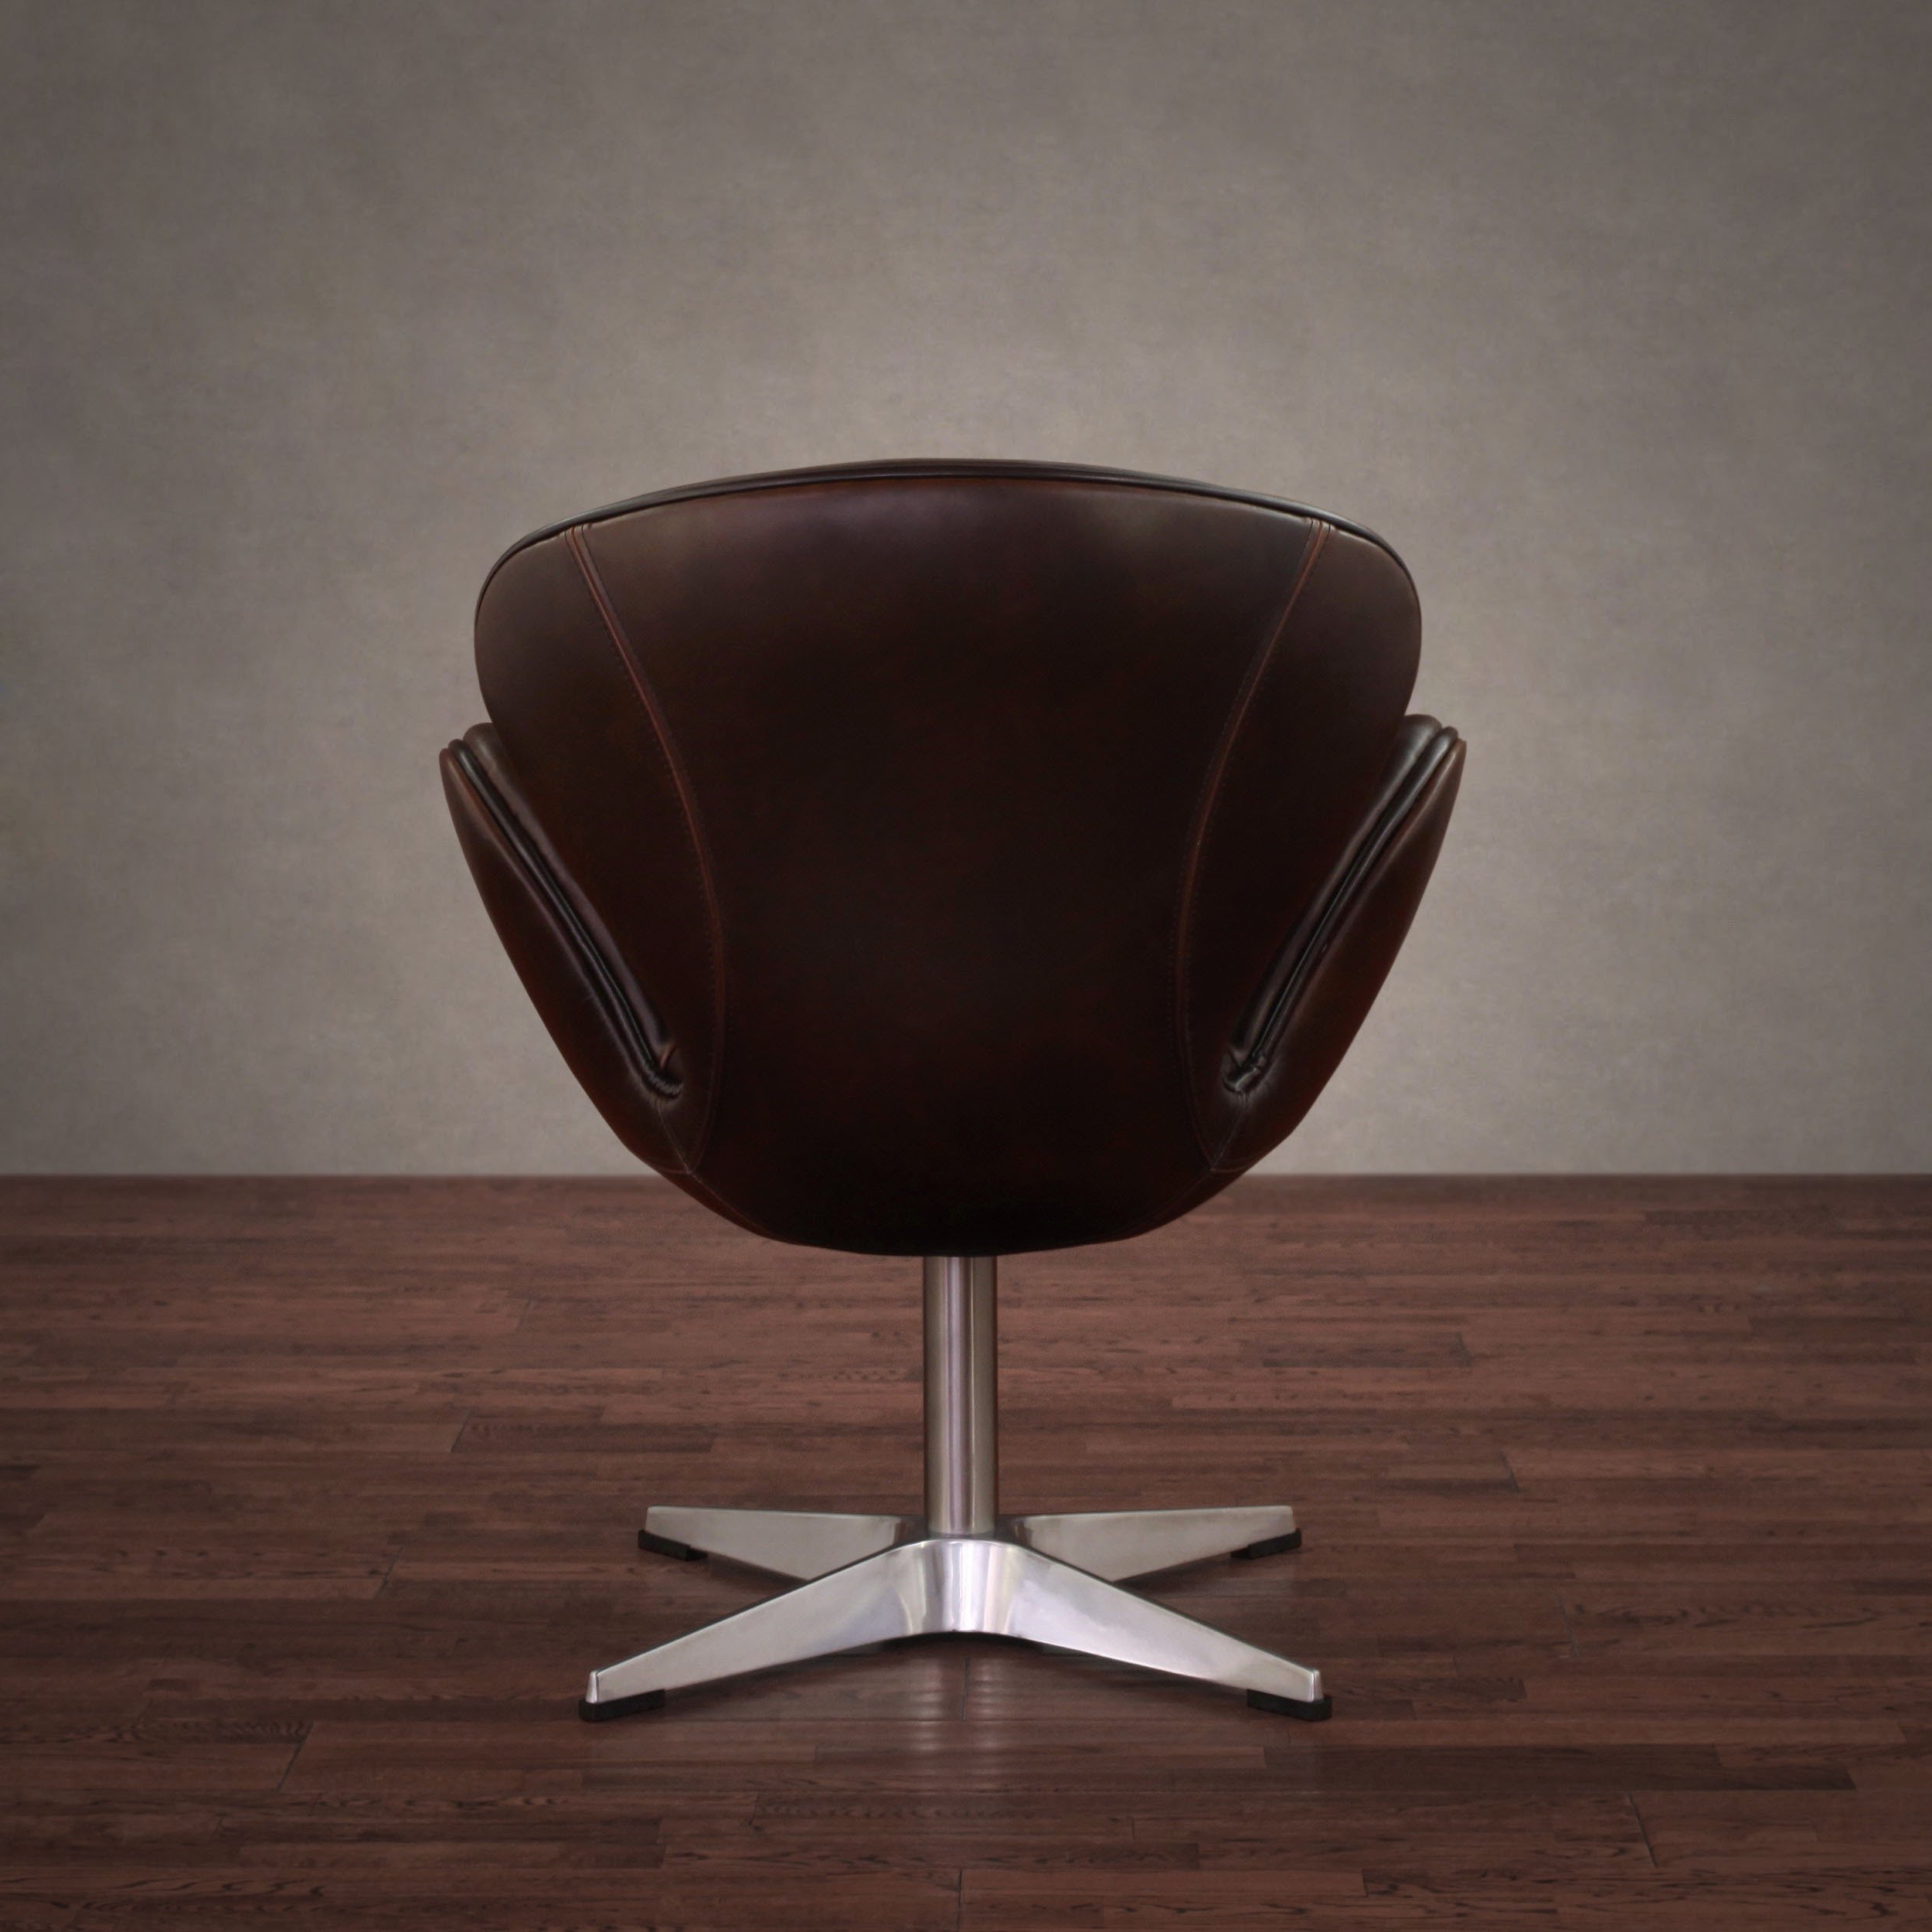 Famous Shop Amelia Vintage Tobacco Leather Swivel Chair – Free Shipping Intended For Swivel Tobacco Leather Chairs (View 3 of 20)